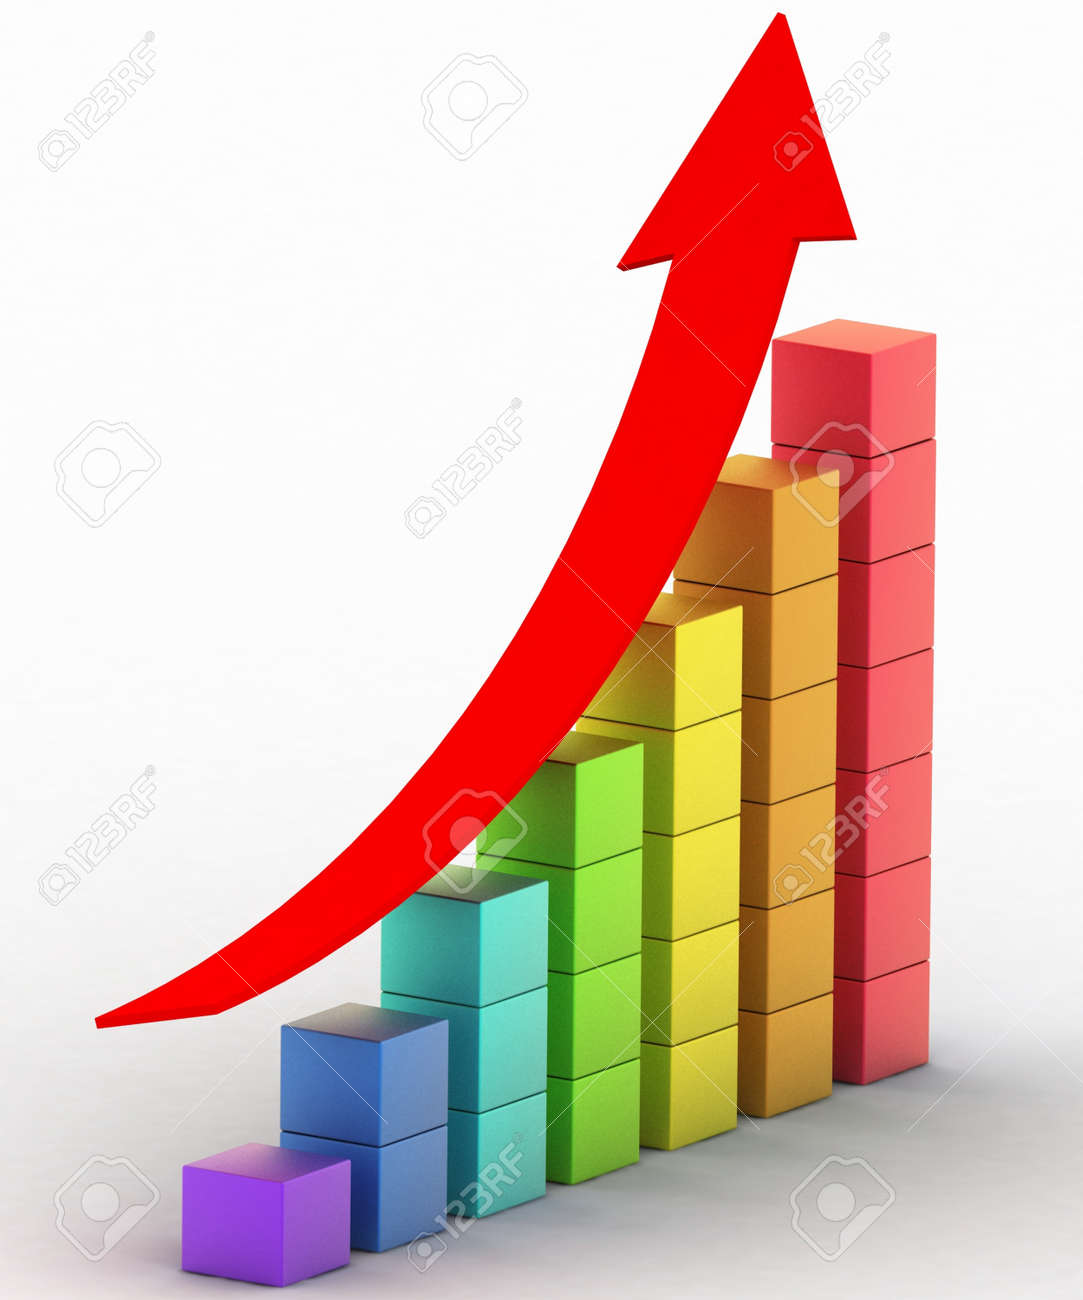 simple business chart stock photo picture and royalty free image